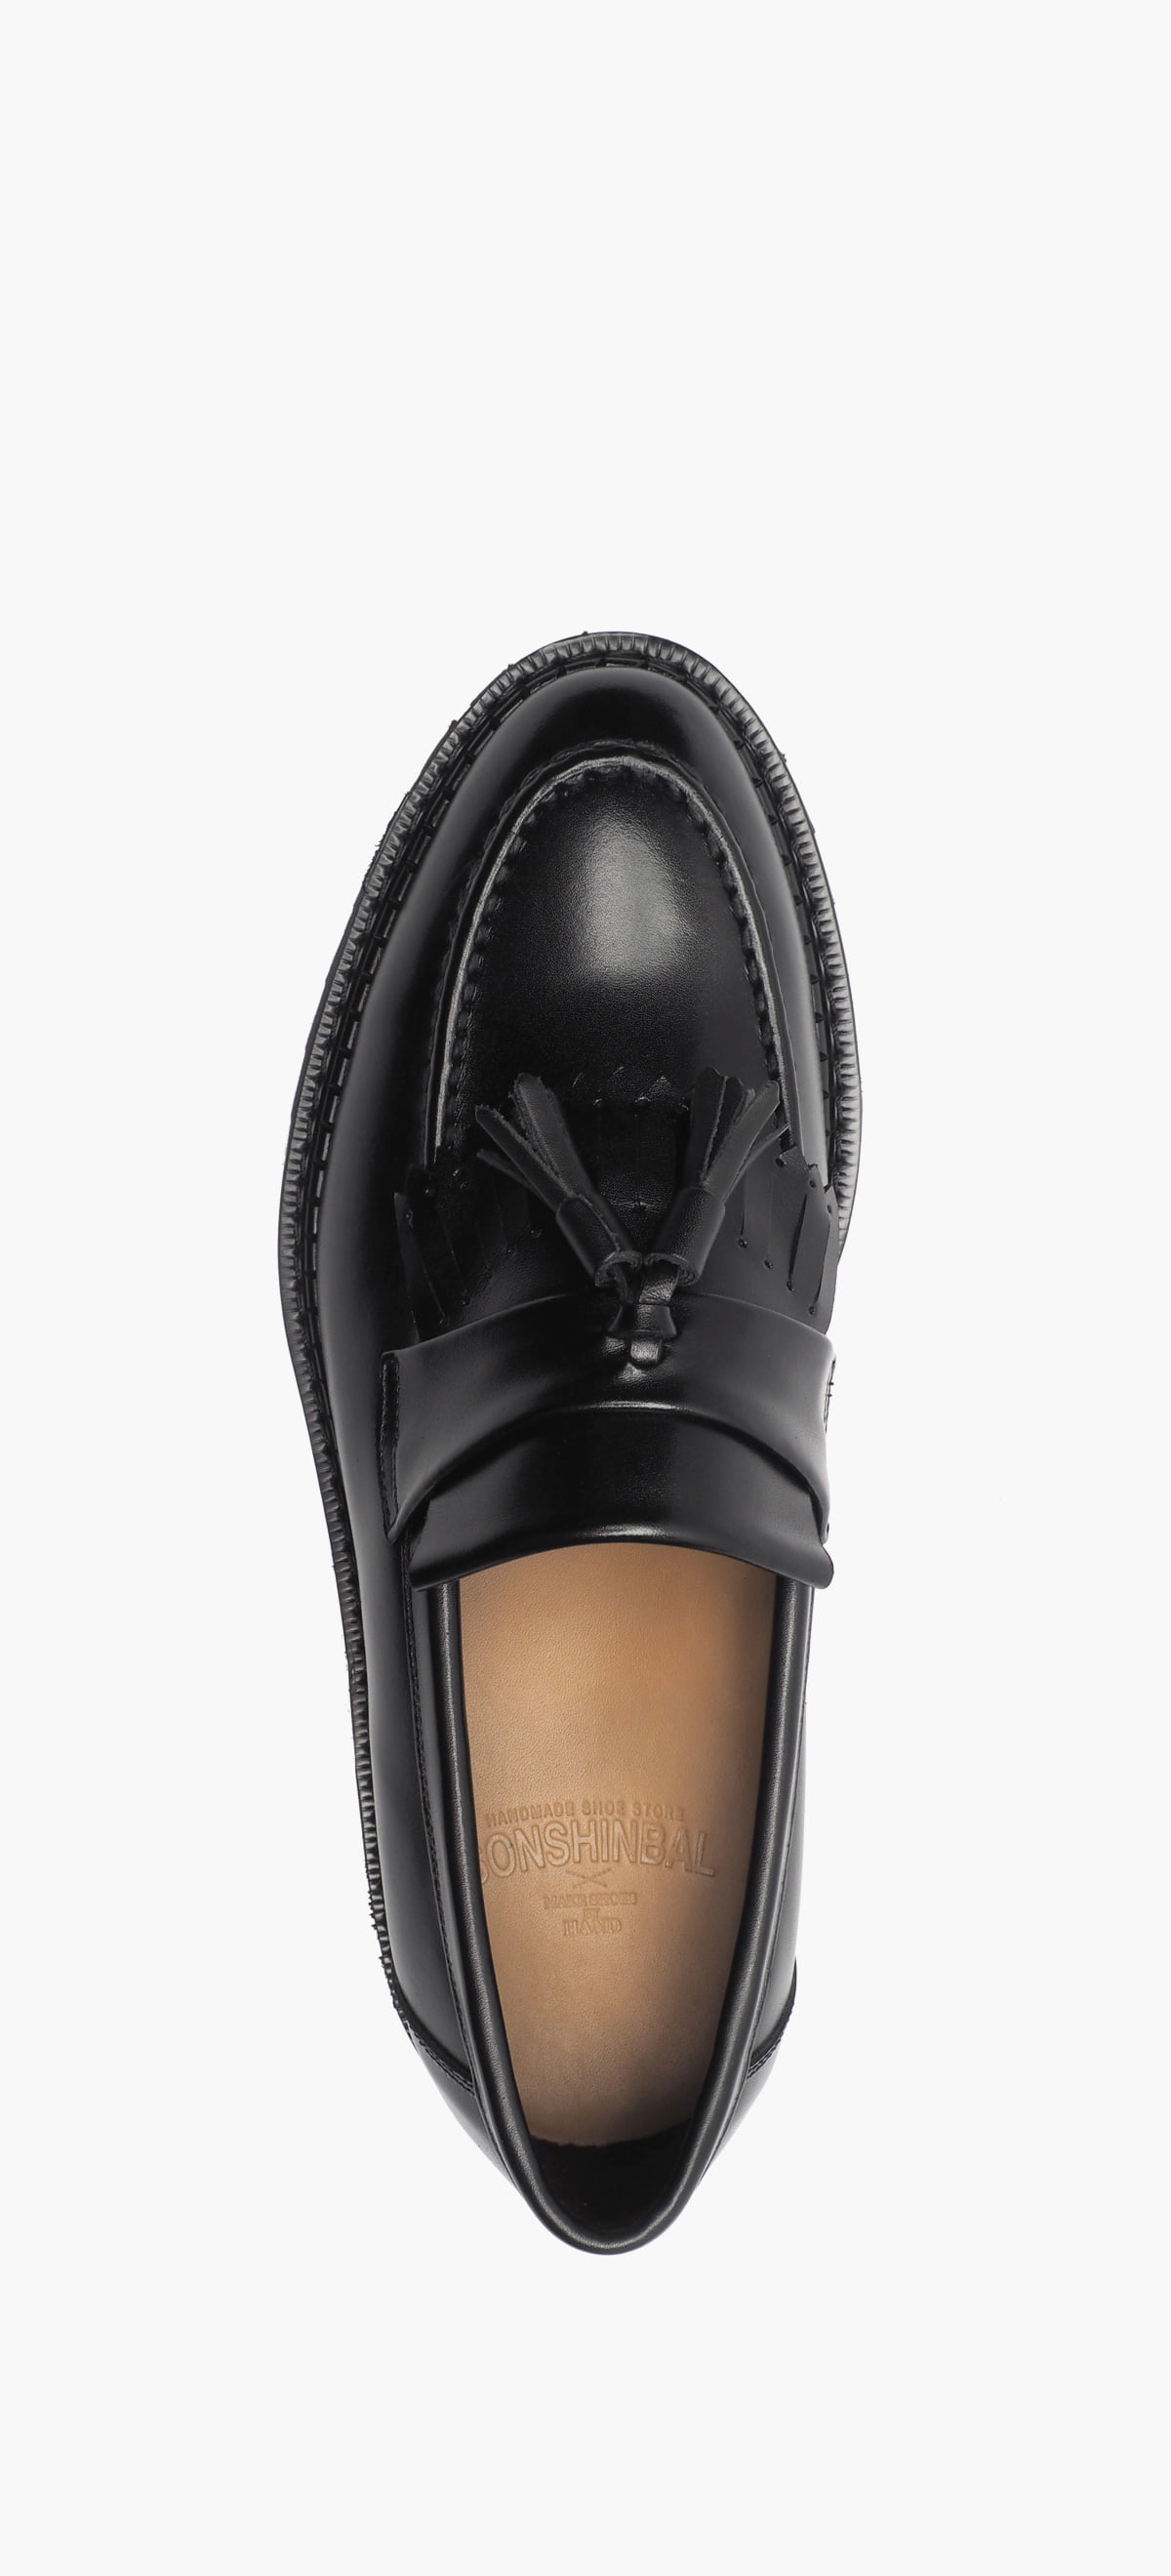 Tassel Loafer 0070-45 Black Kip